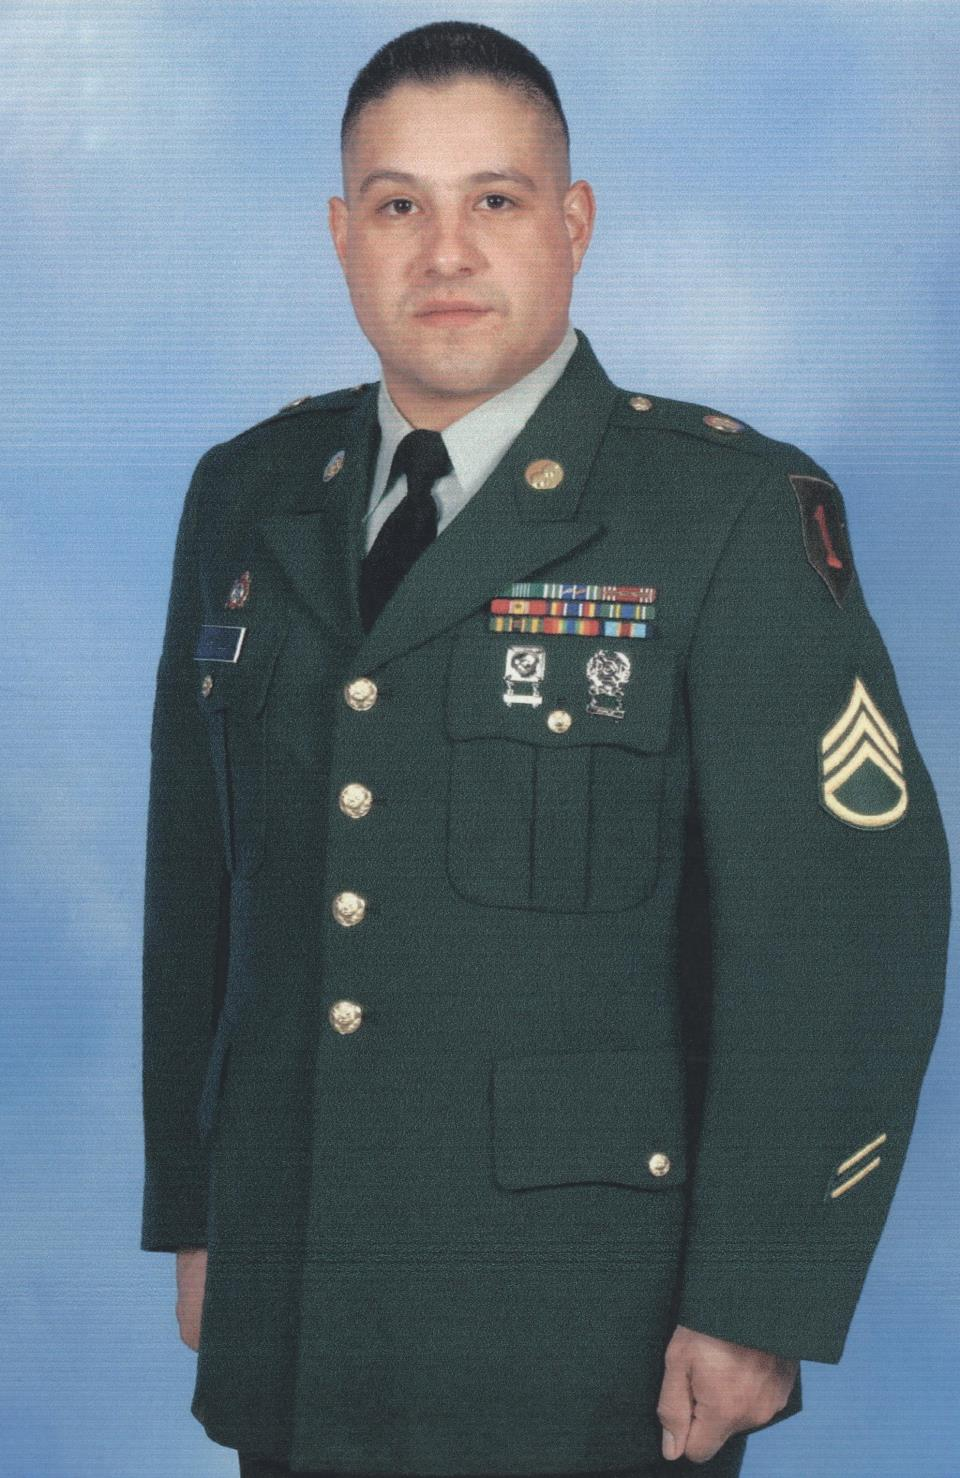 William R. Castilla, Army